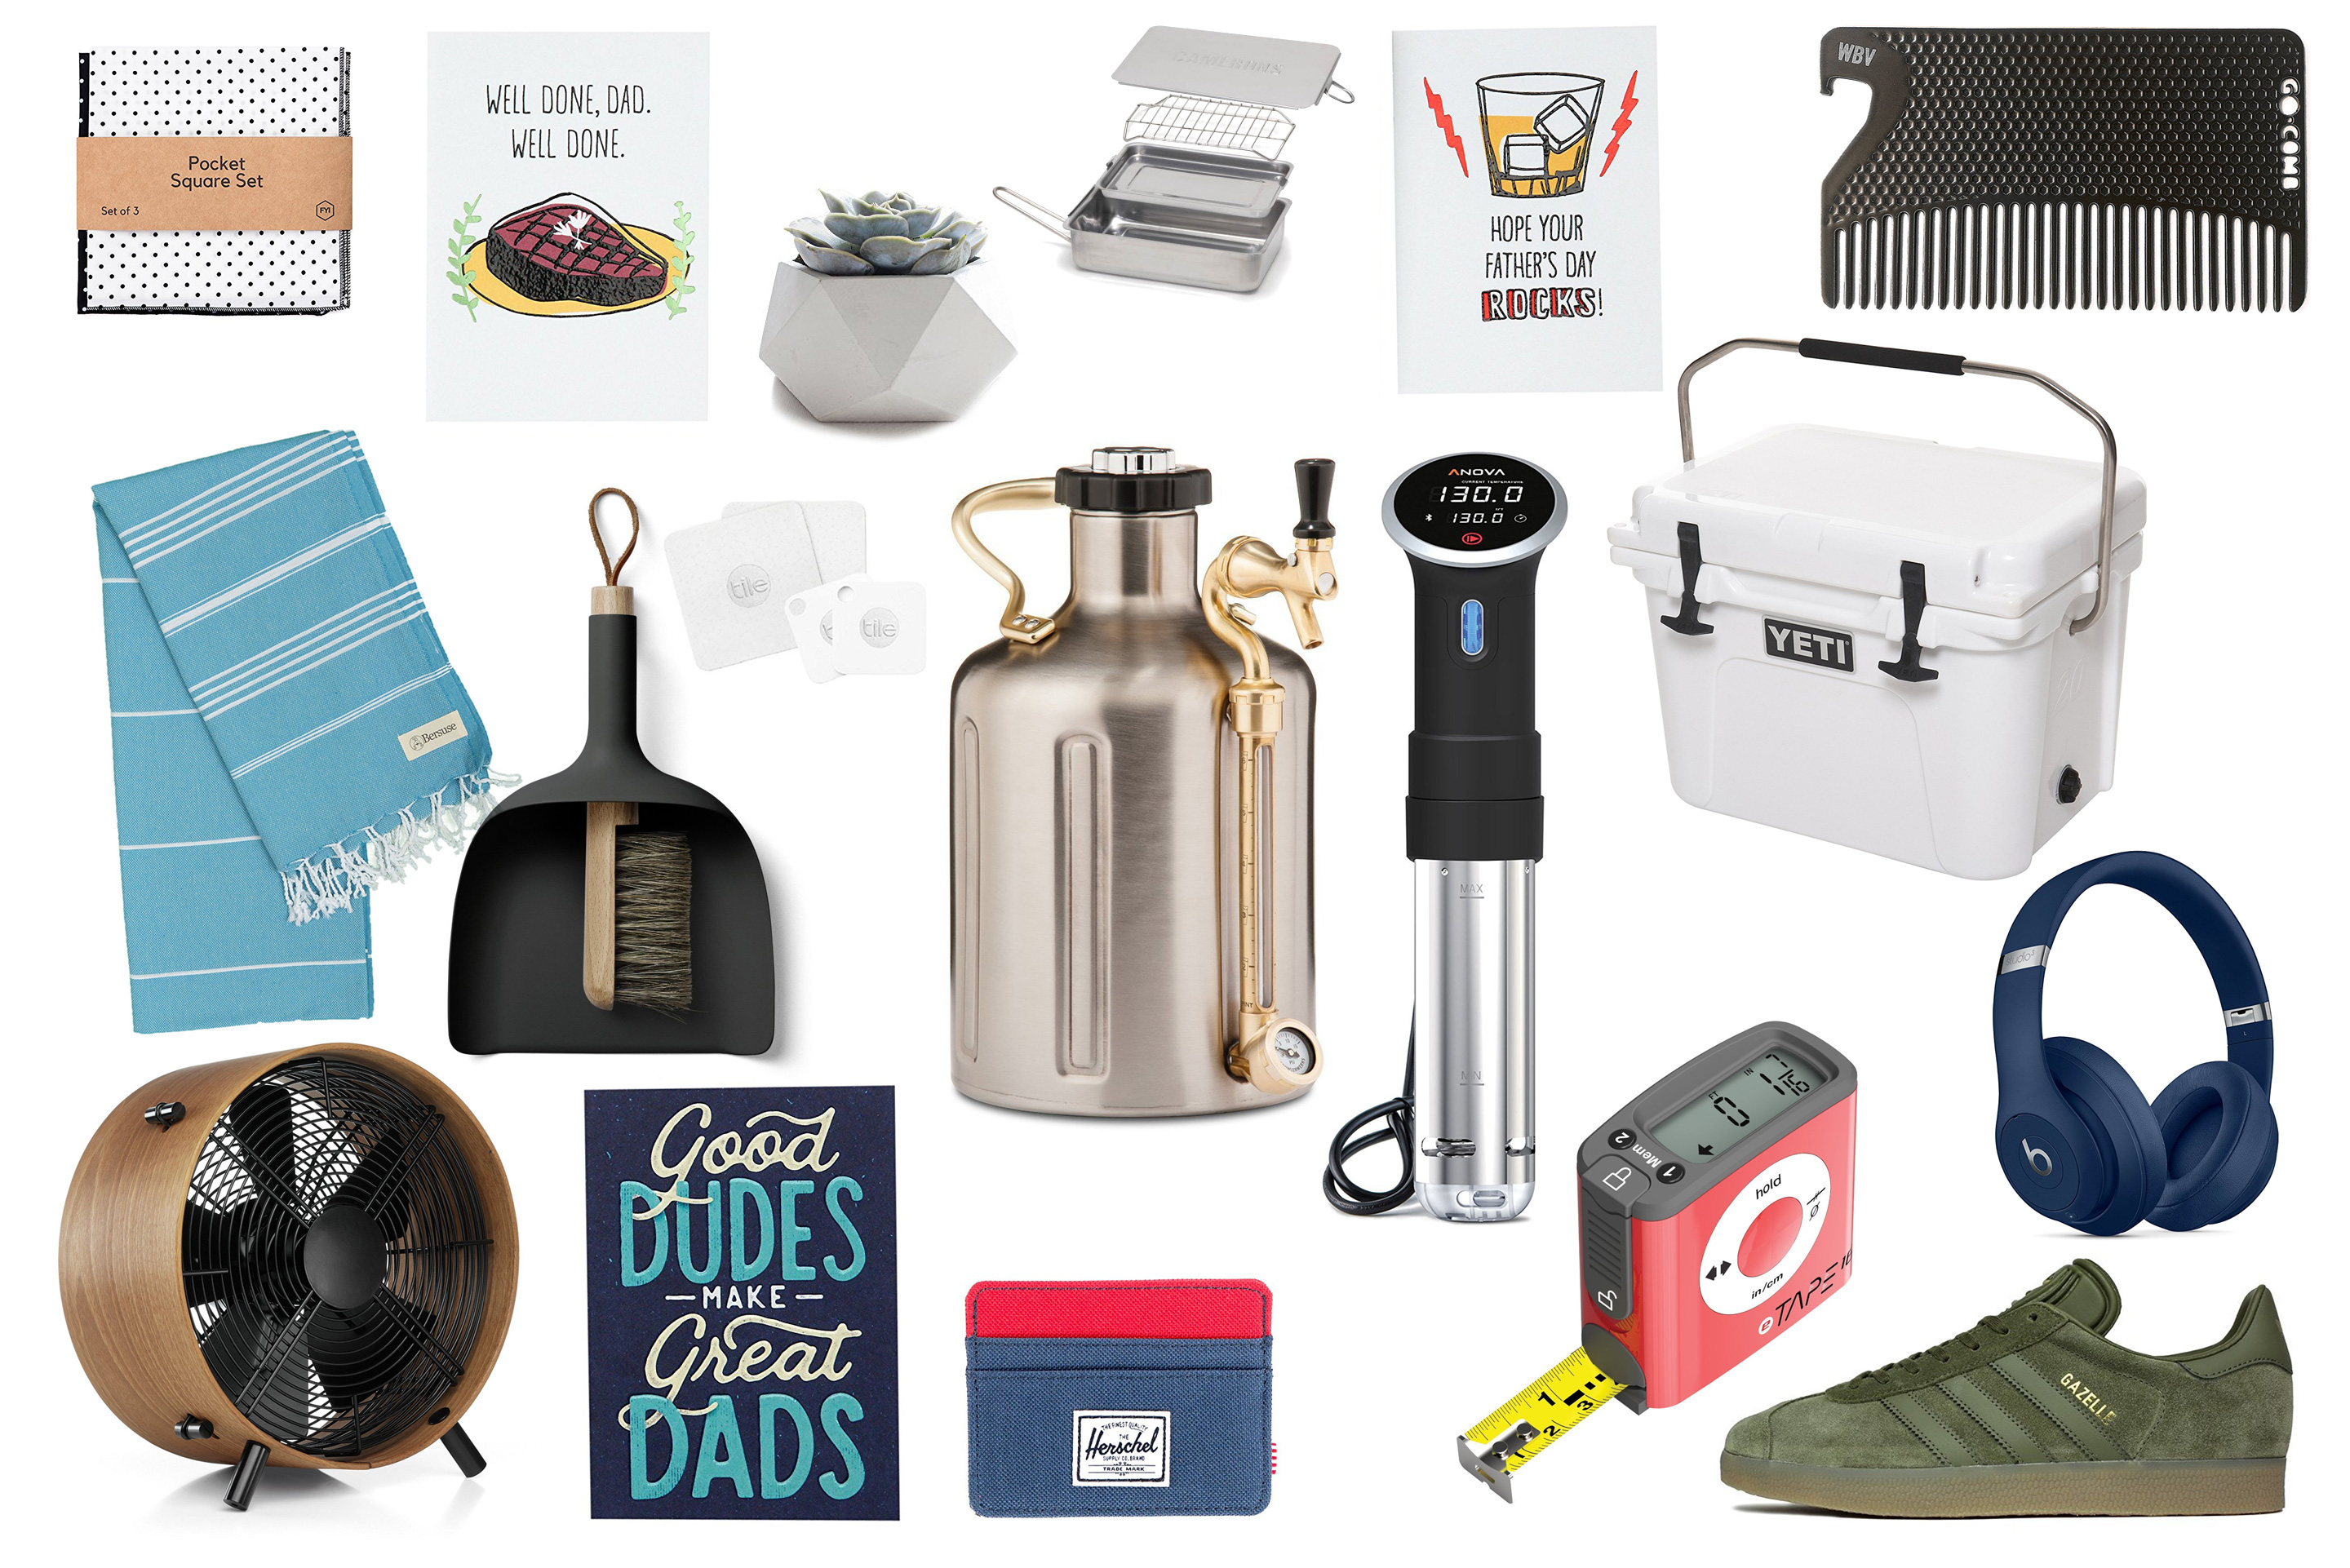 Impressive Law Gifts A Day Gift Are You Looking Present Far Dads Your Maybe Your Baby Your Your 2018 Day Gift Guide I Am A Food Blog I Am A Food Blog Gifts Law Amazon Far gifts Gifts For Father In Law